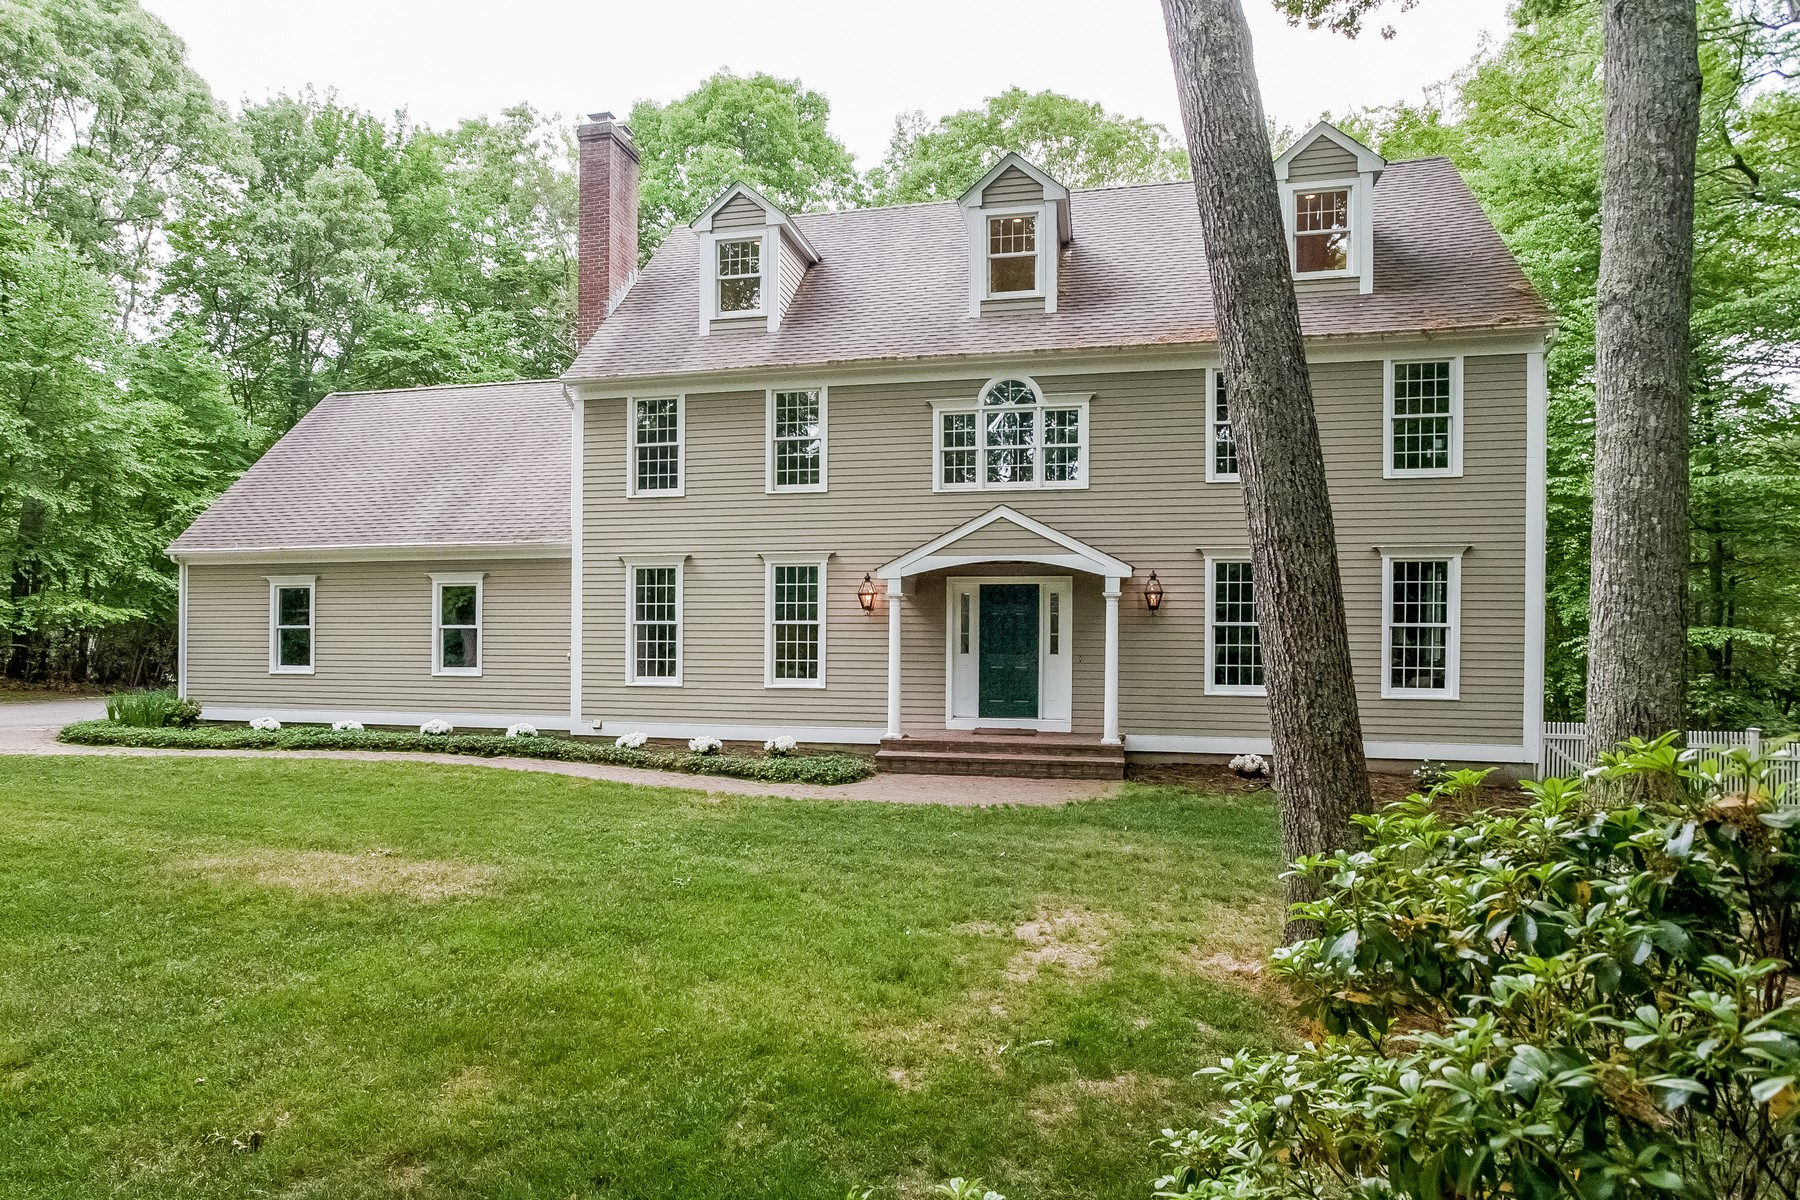 Single Family Home for Sale at Matson Ridge Colonial 12 Matson Ridge Old Lyme, Connecticut 06371 United States